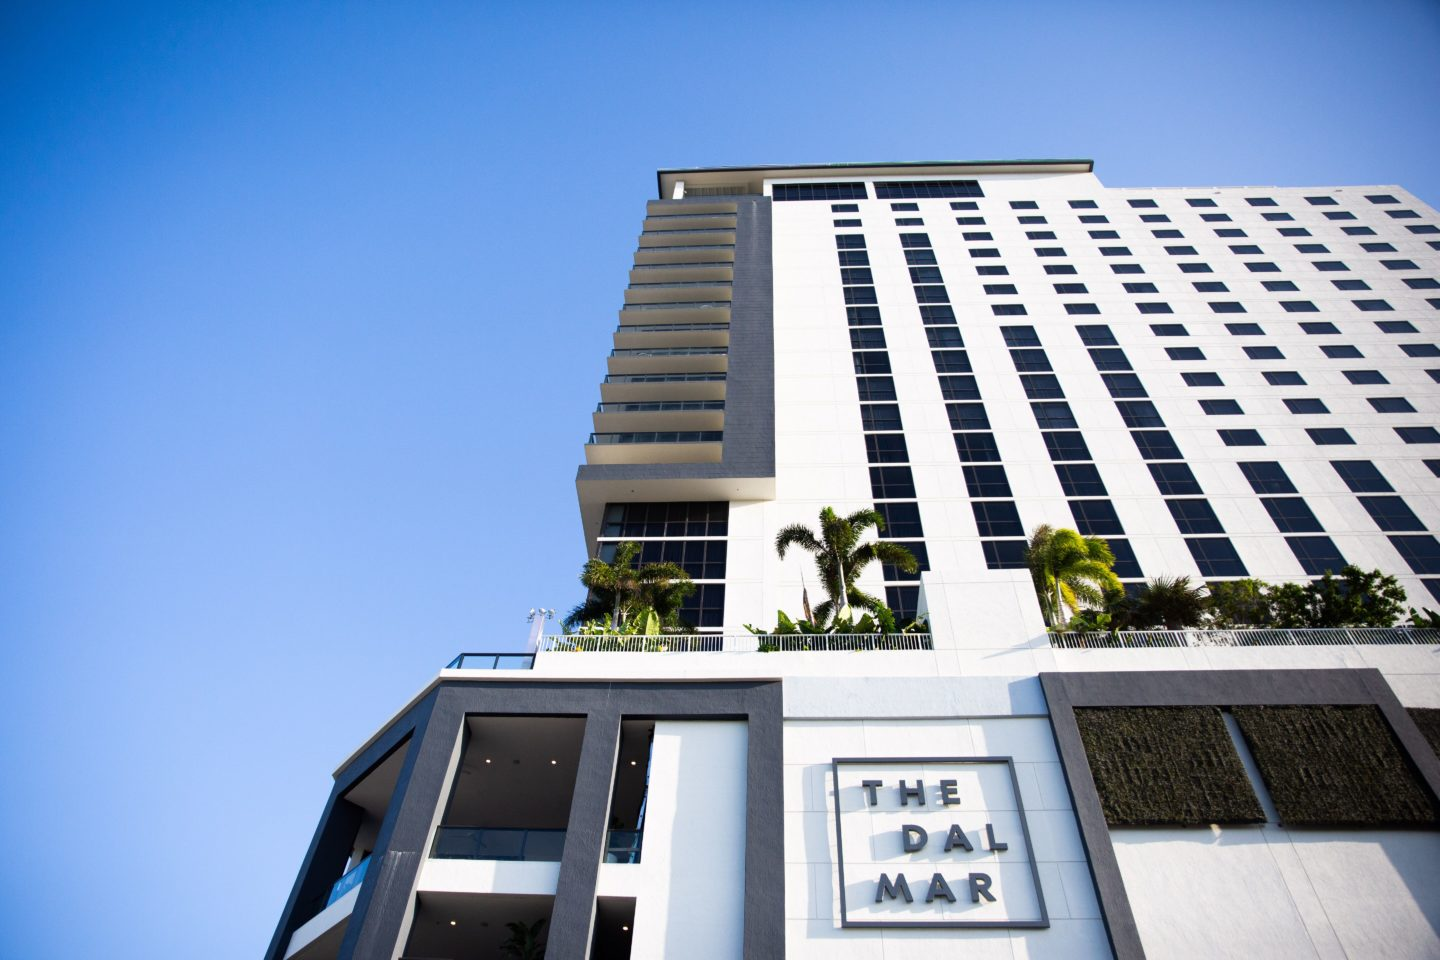 The Dalmar Hotel Fort Lauderdale